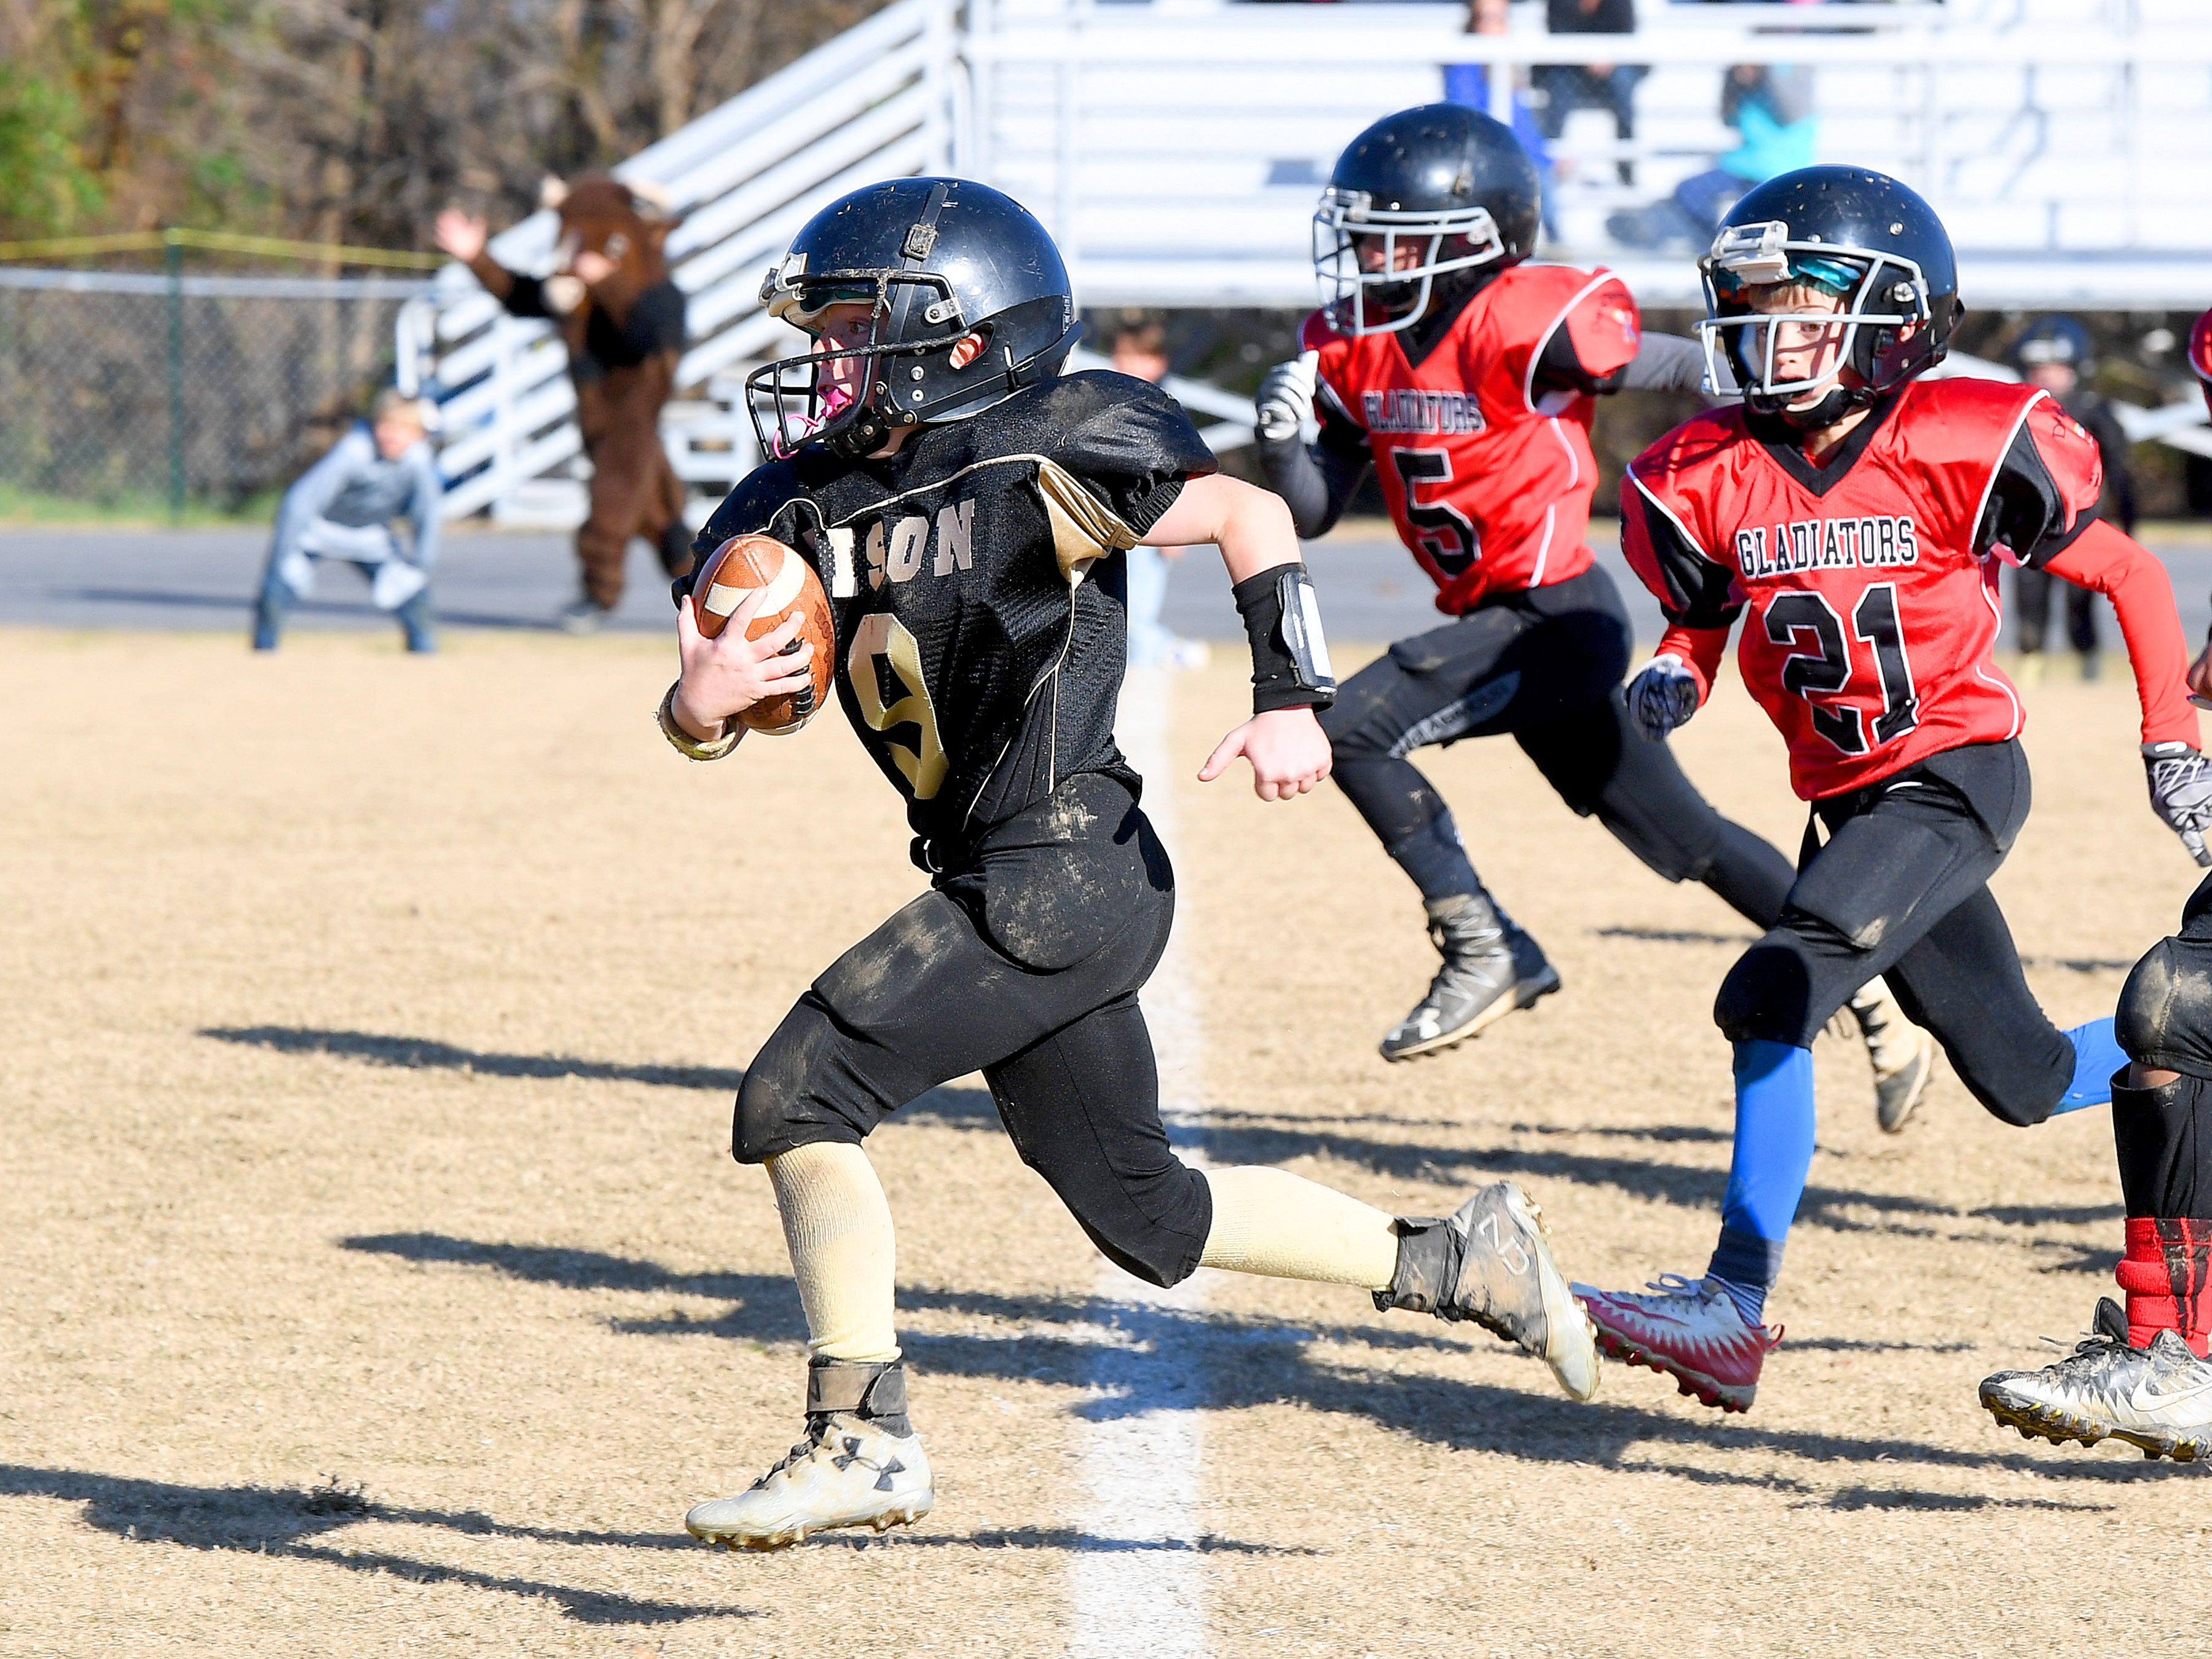 Buffalo Gap's Brandon Argenbright breaks away with the football and keeps going during the Augusta County Quarterback Club Midget Super Bowl in Fishersville on Sunday, Nov. 11, 2018. Riverheads beat Buffalo Gap, 25-6.